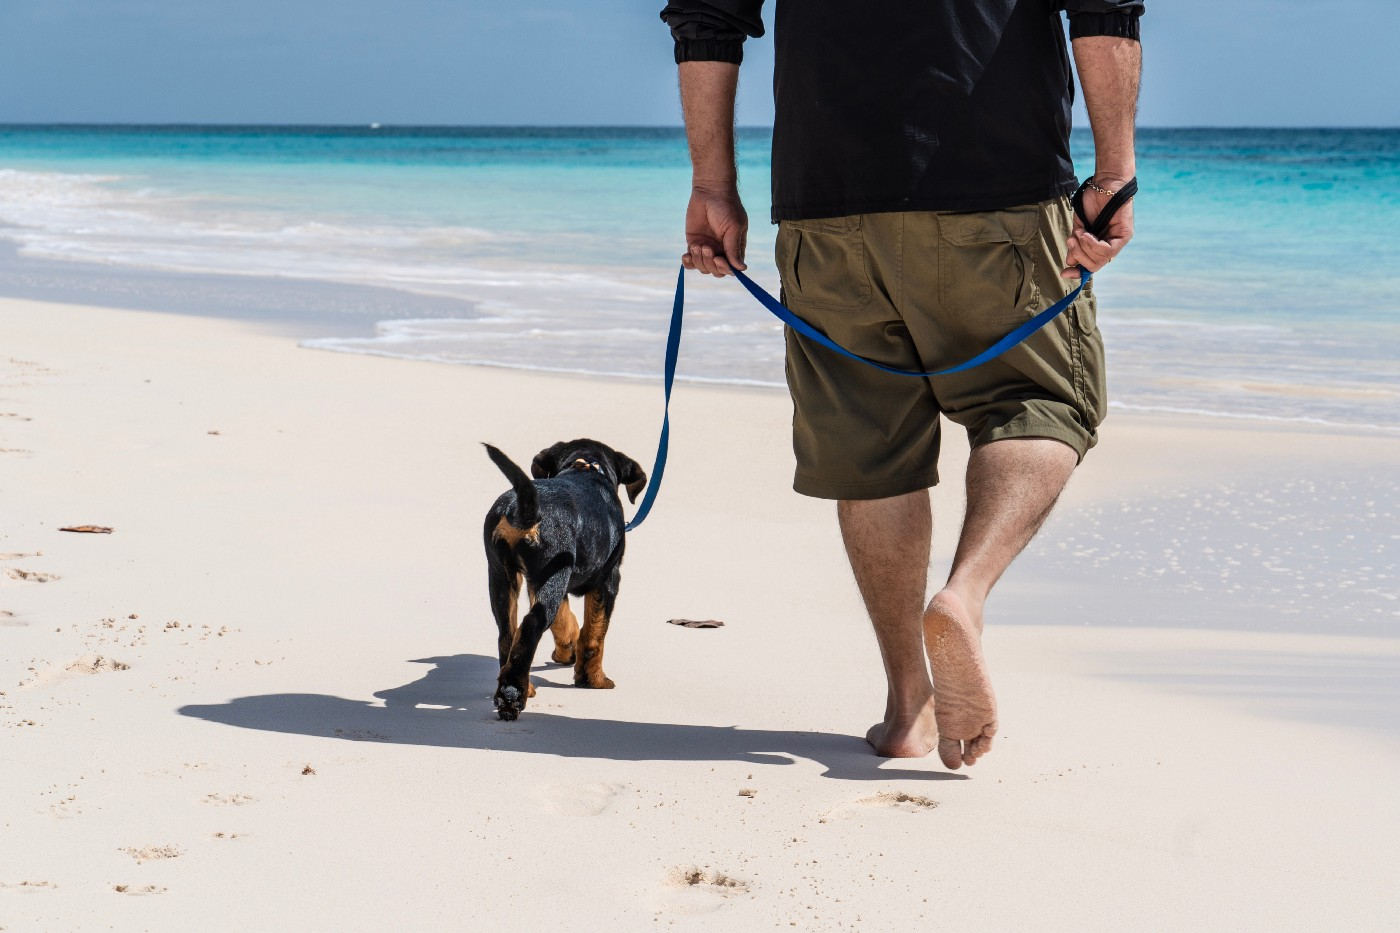 A black small dog with a brown bum walking with its owner on the beach. The owner is holding a blue long leash walking with bare feet.